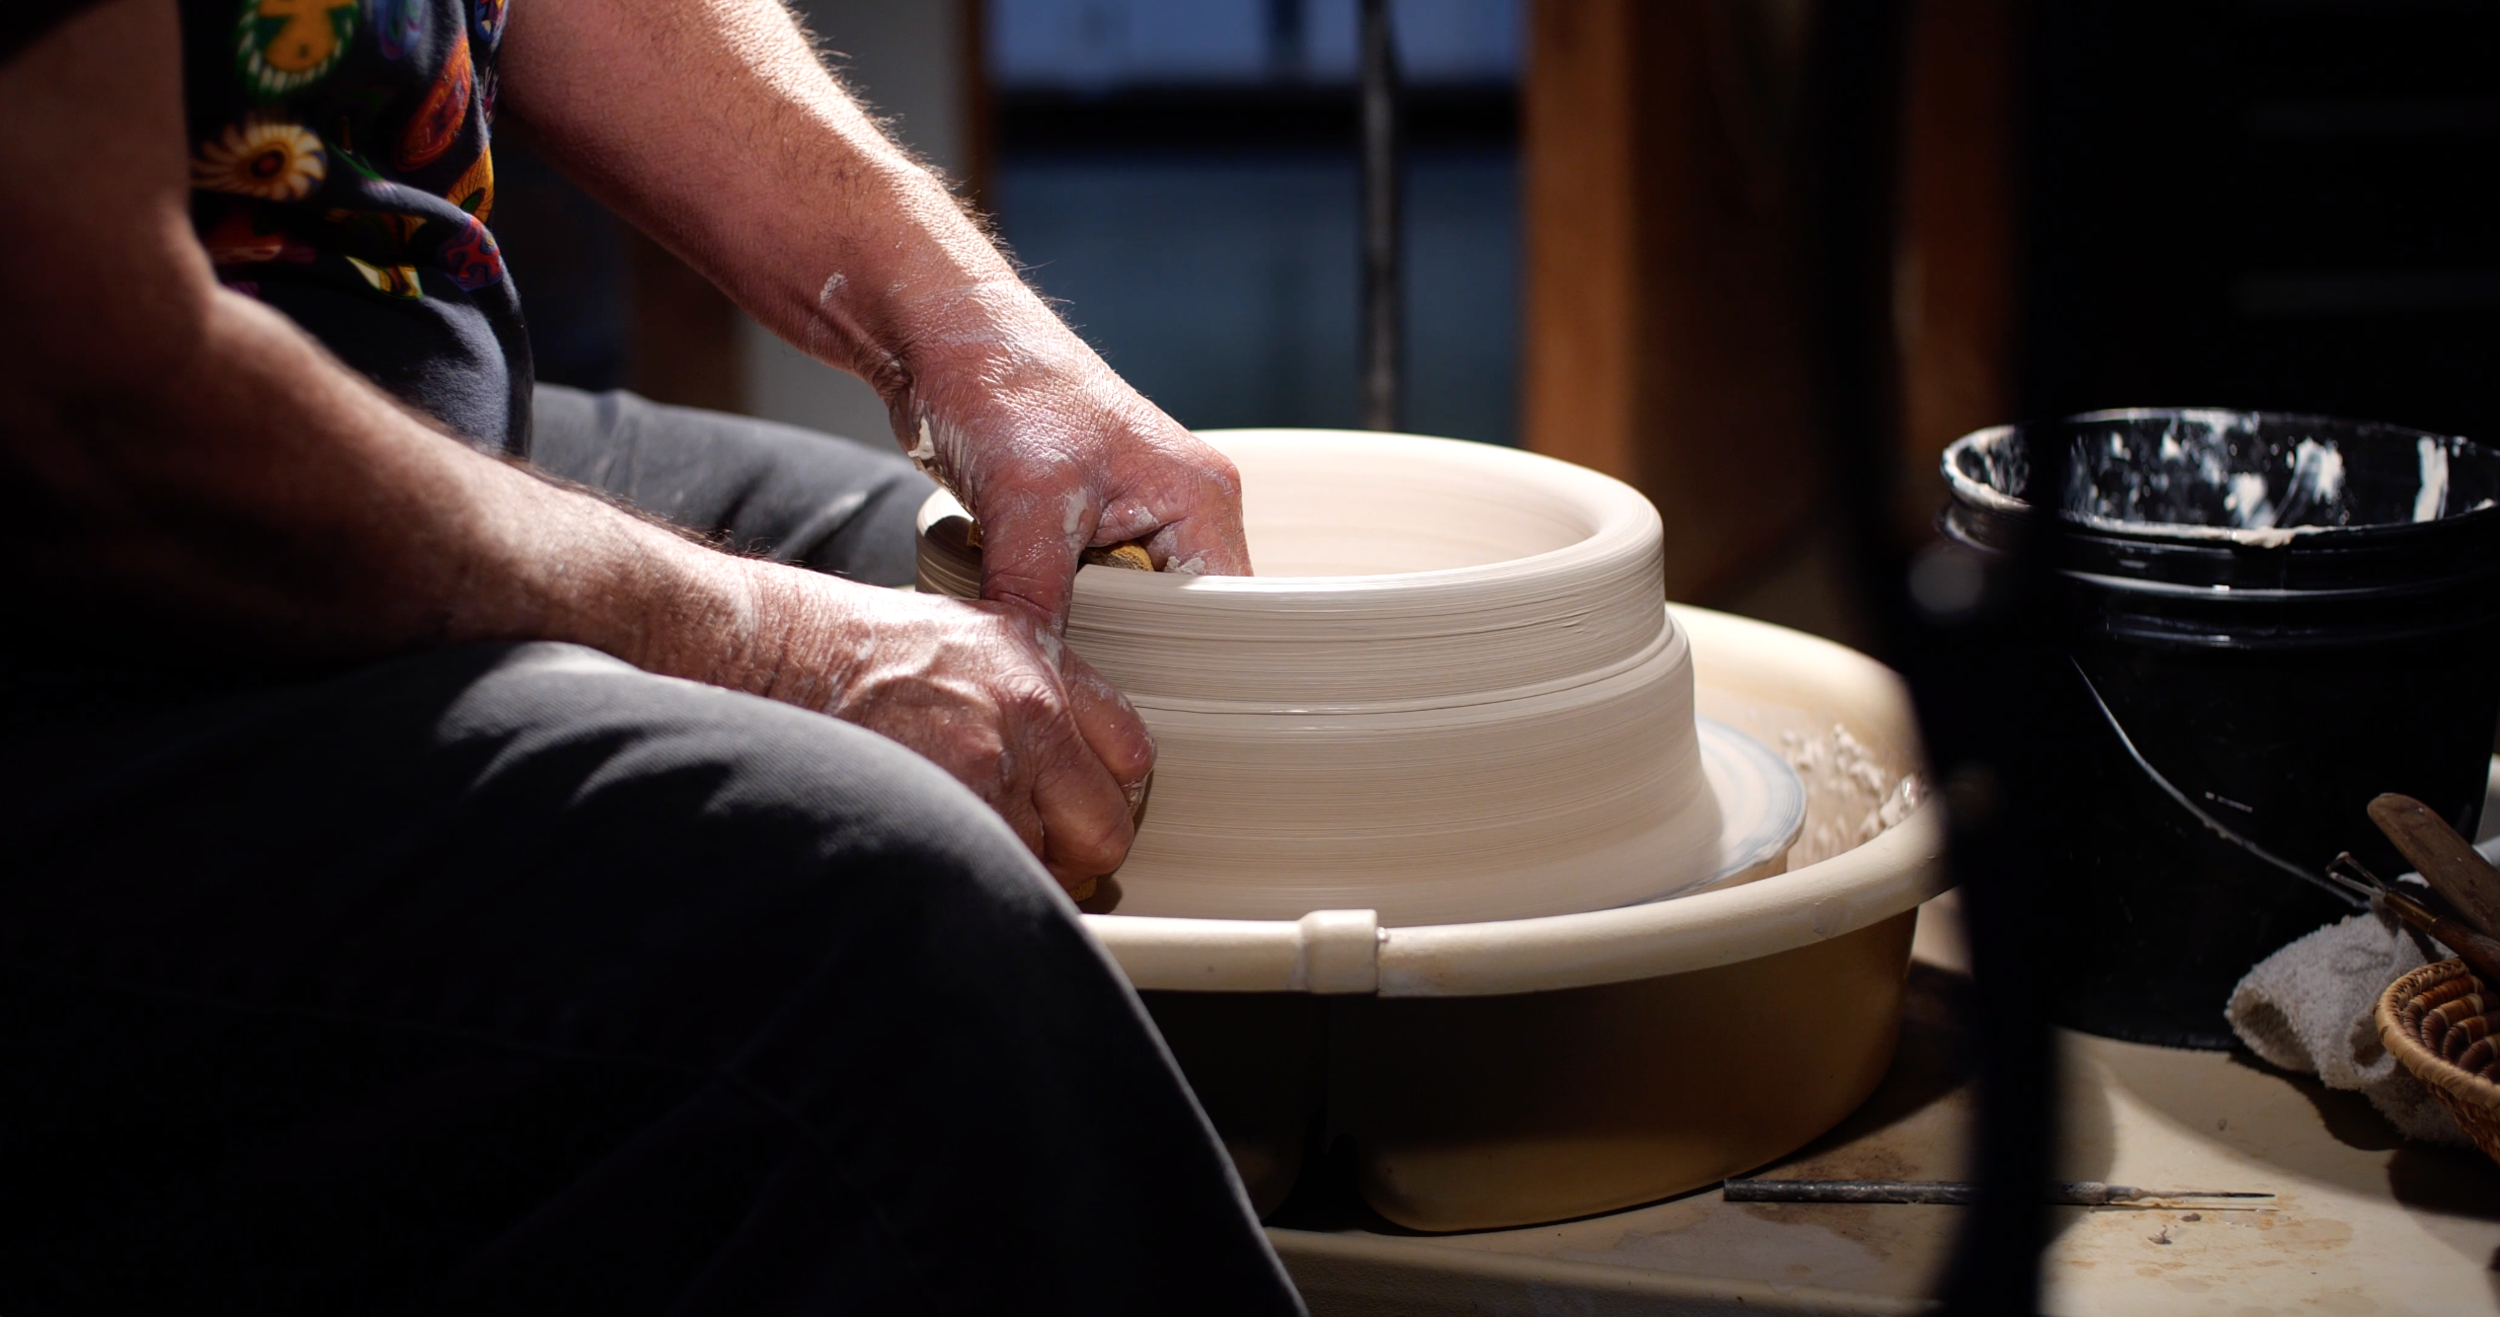 Rich Lopez shaping a pot.